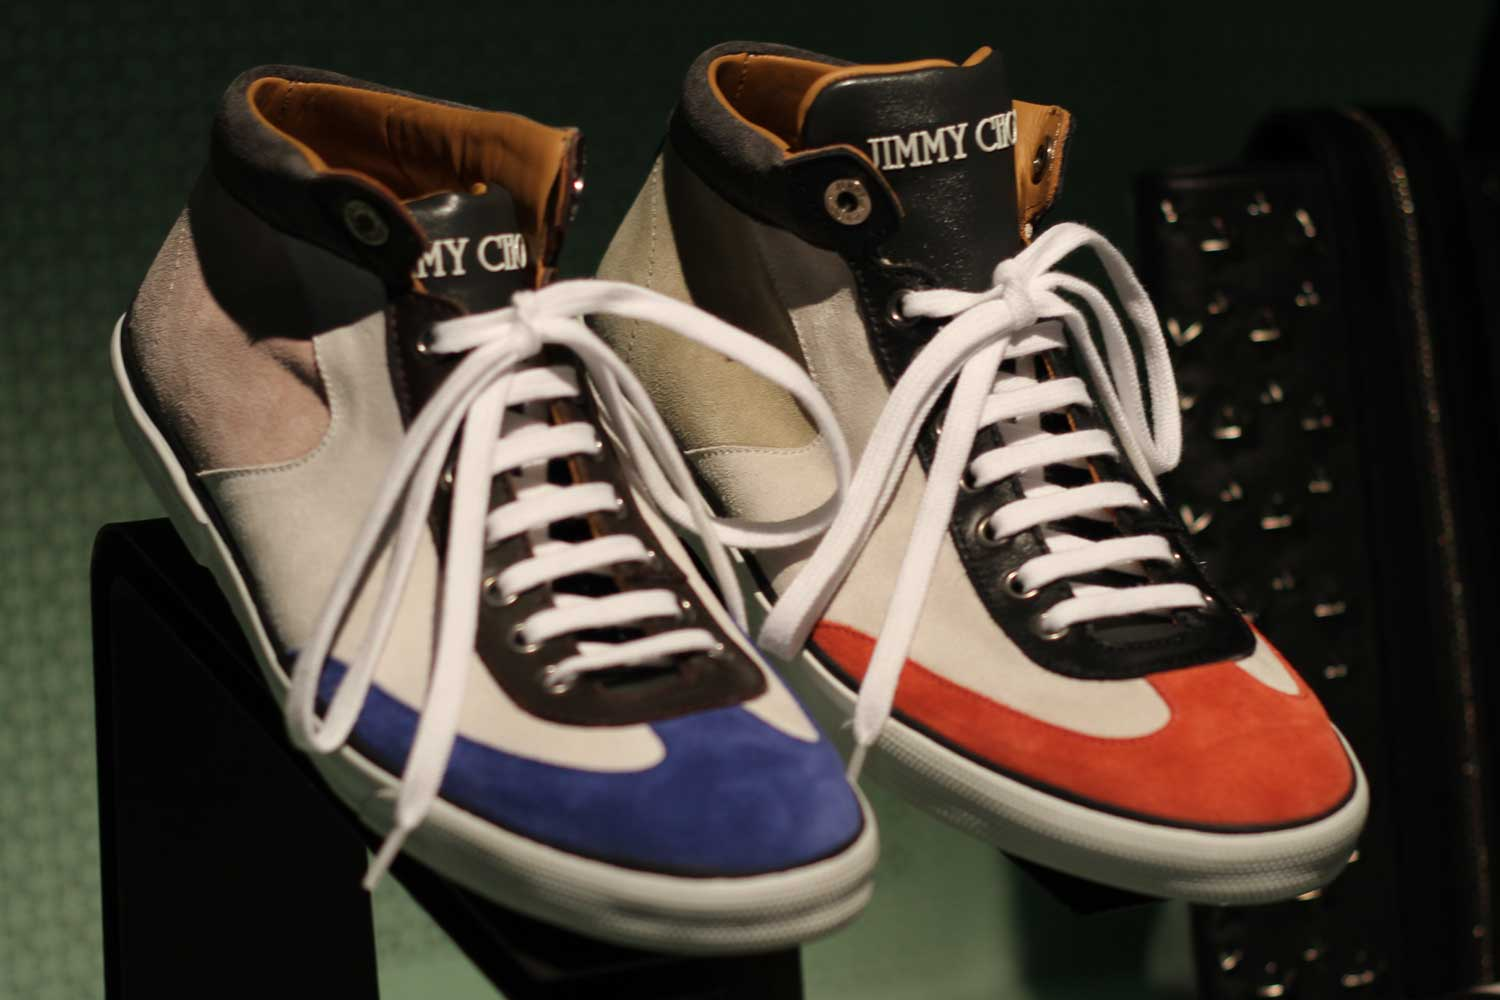 Jimmy-Choo-LCM-SS14-Presentation-Blue-Orange-High-Tops